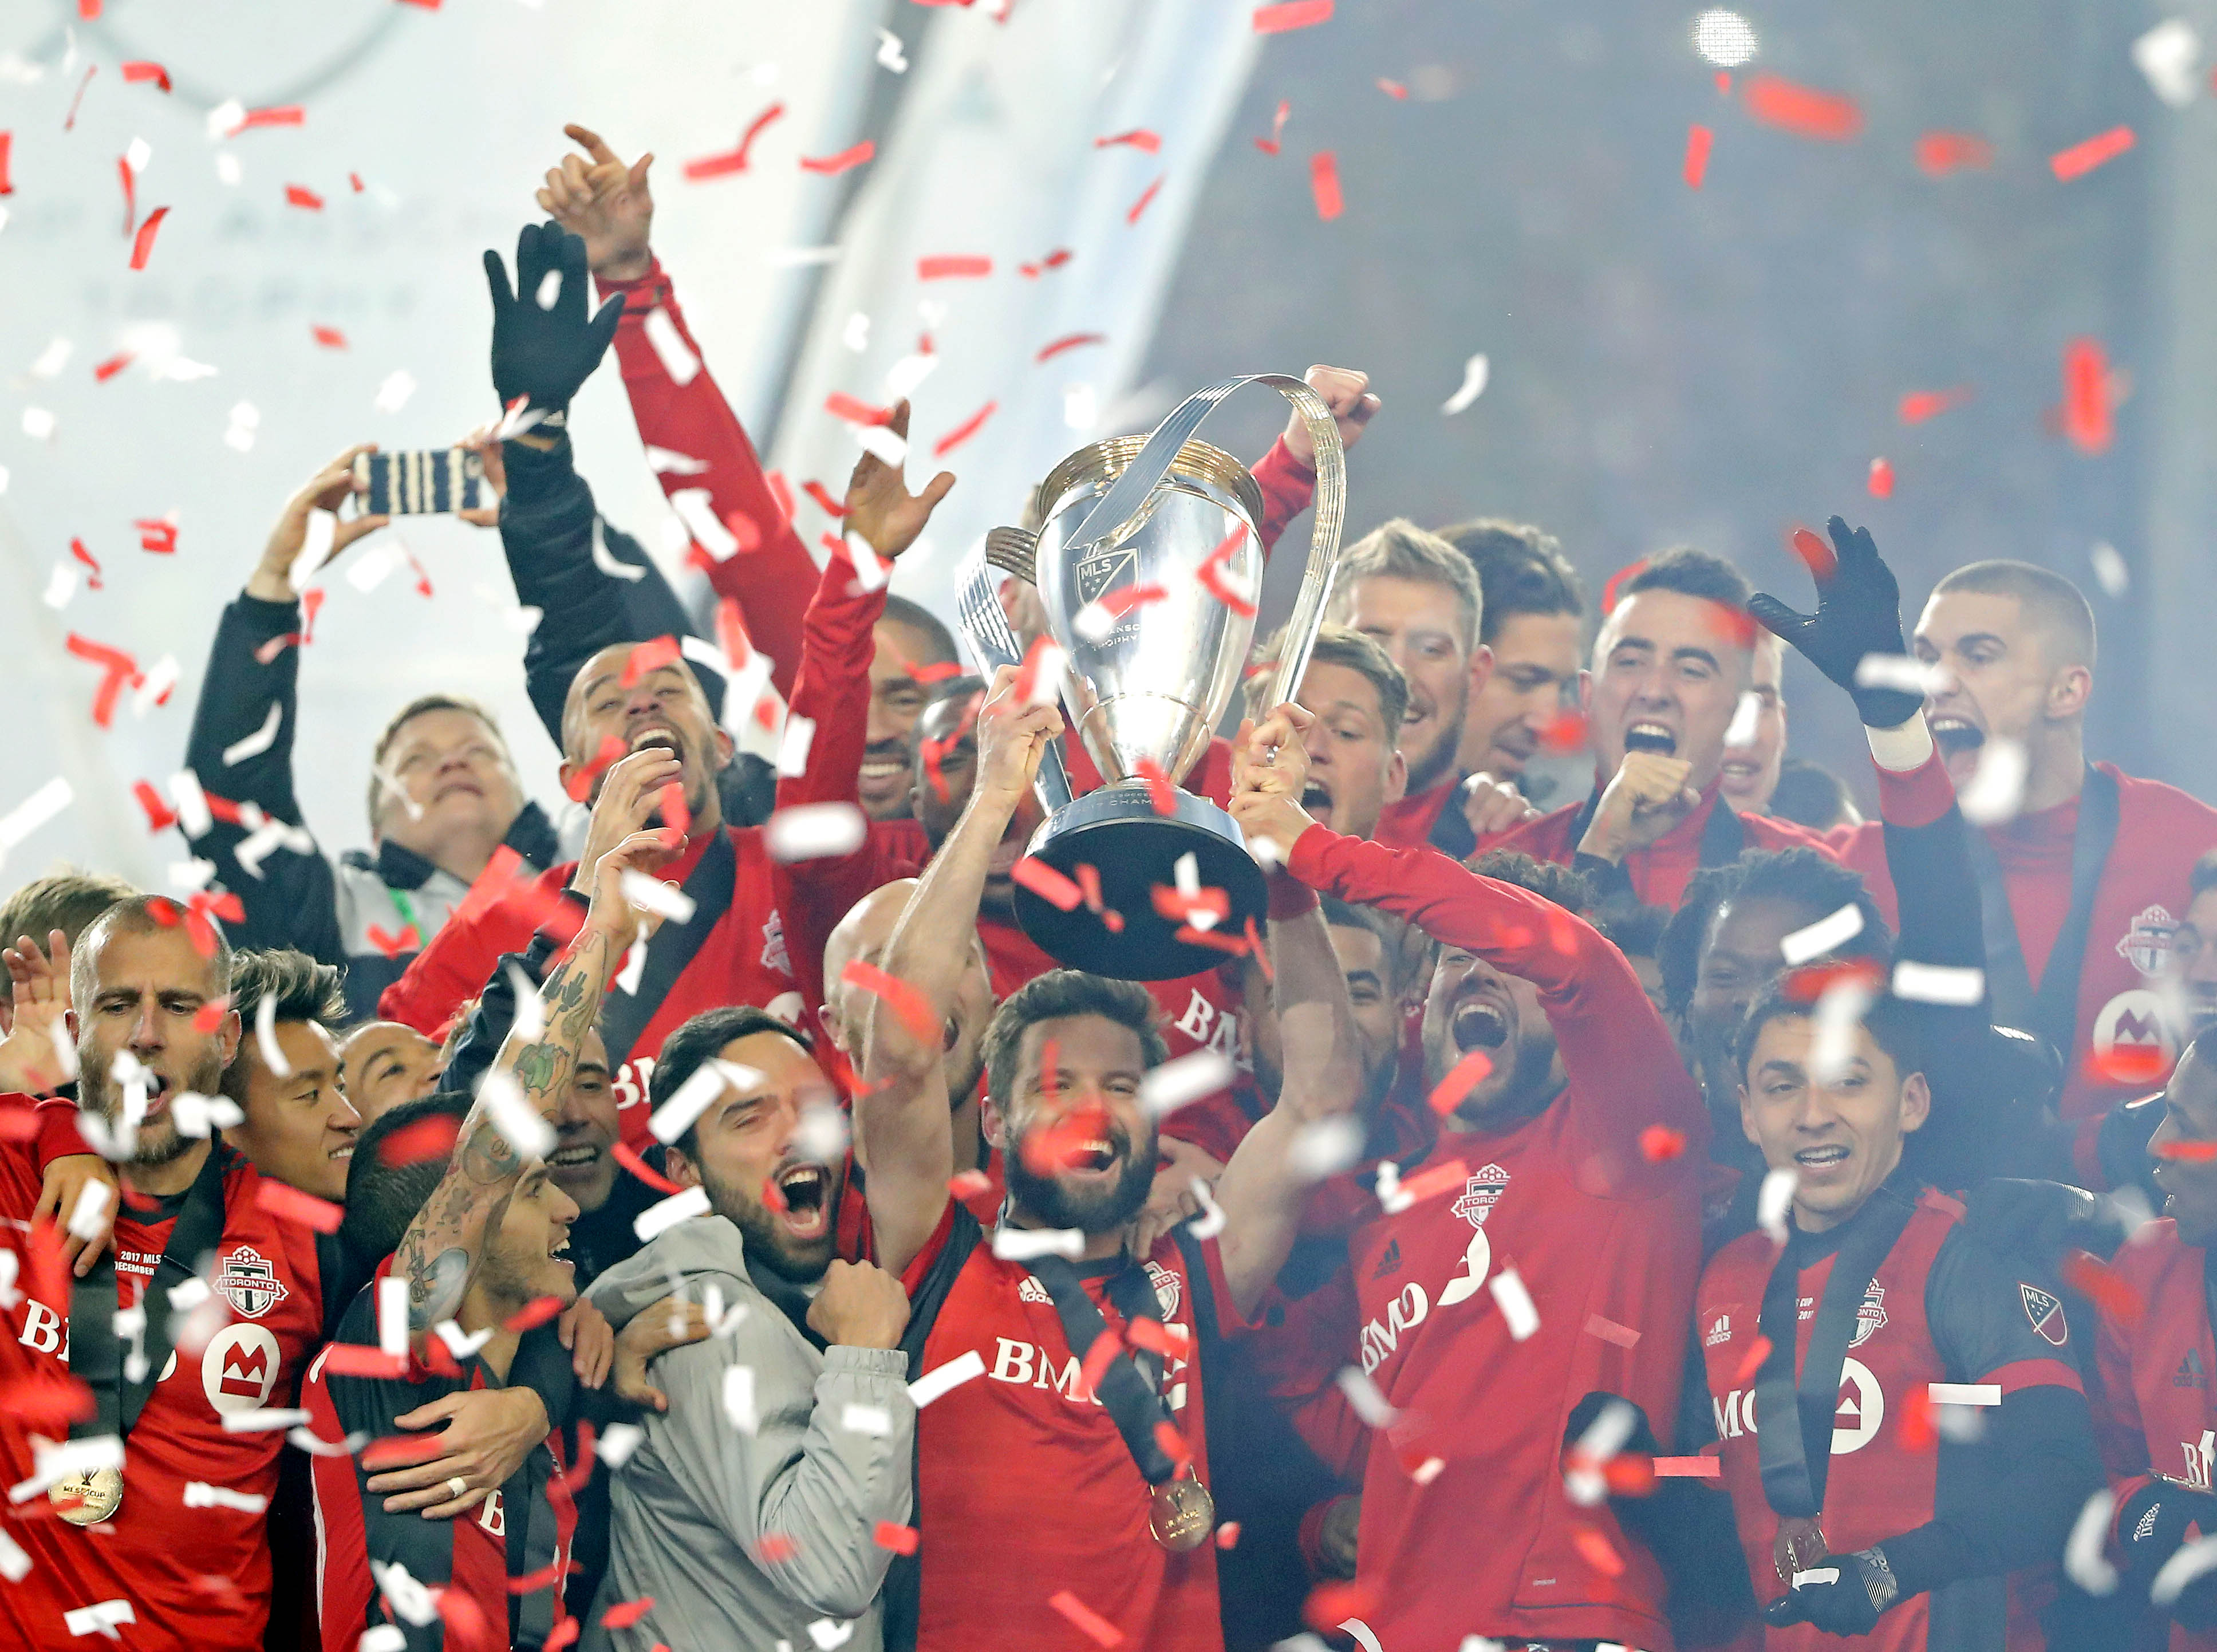 See Toronto FC's epic champagne celebration